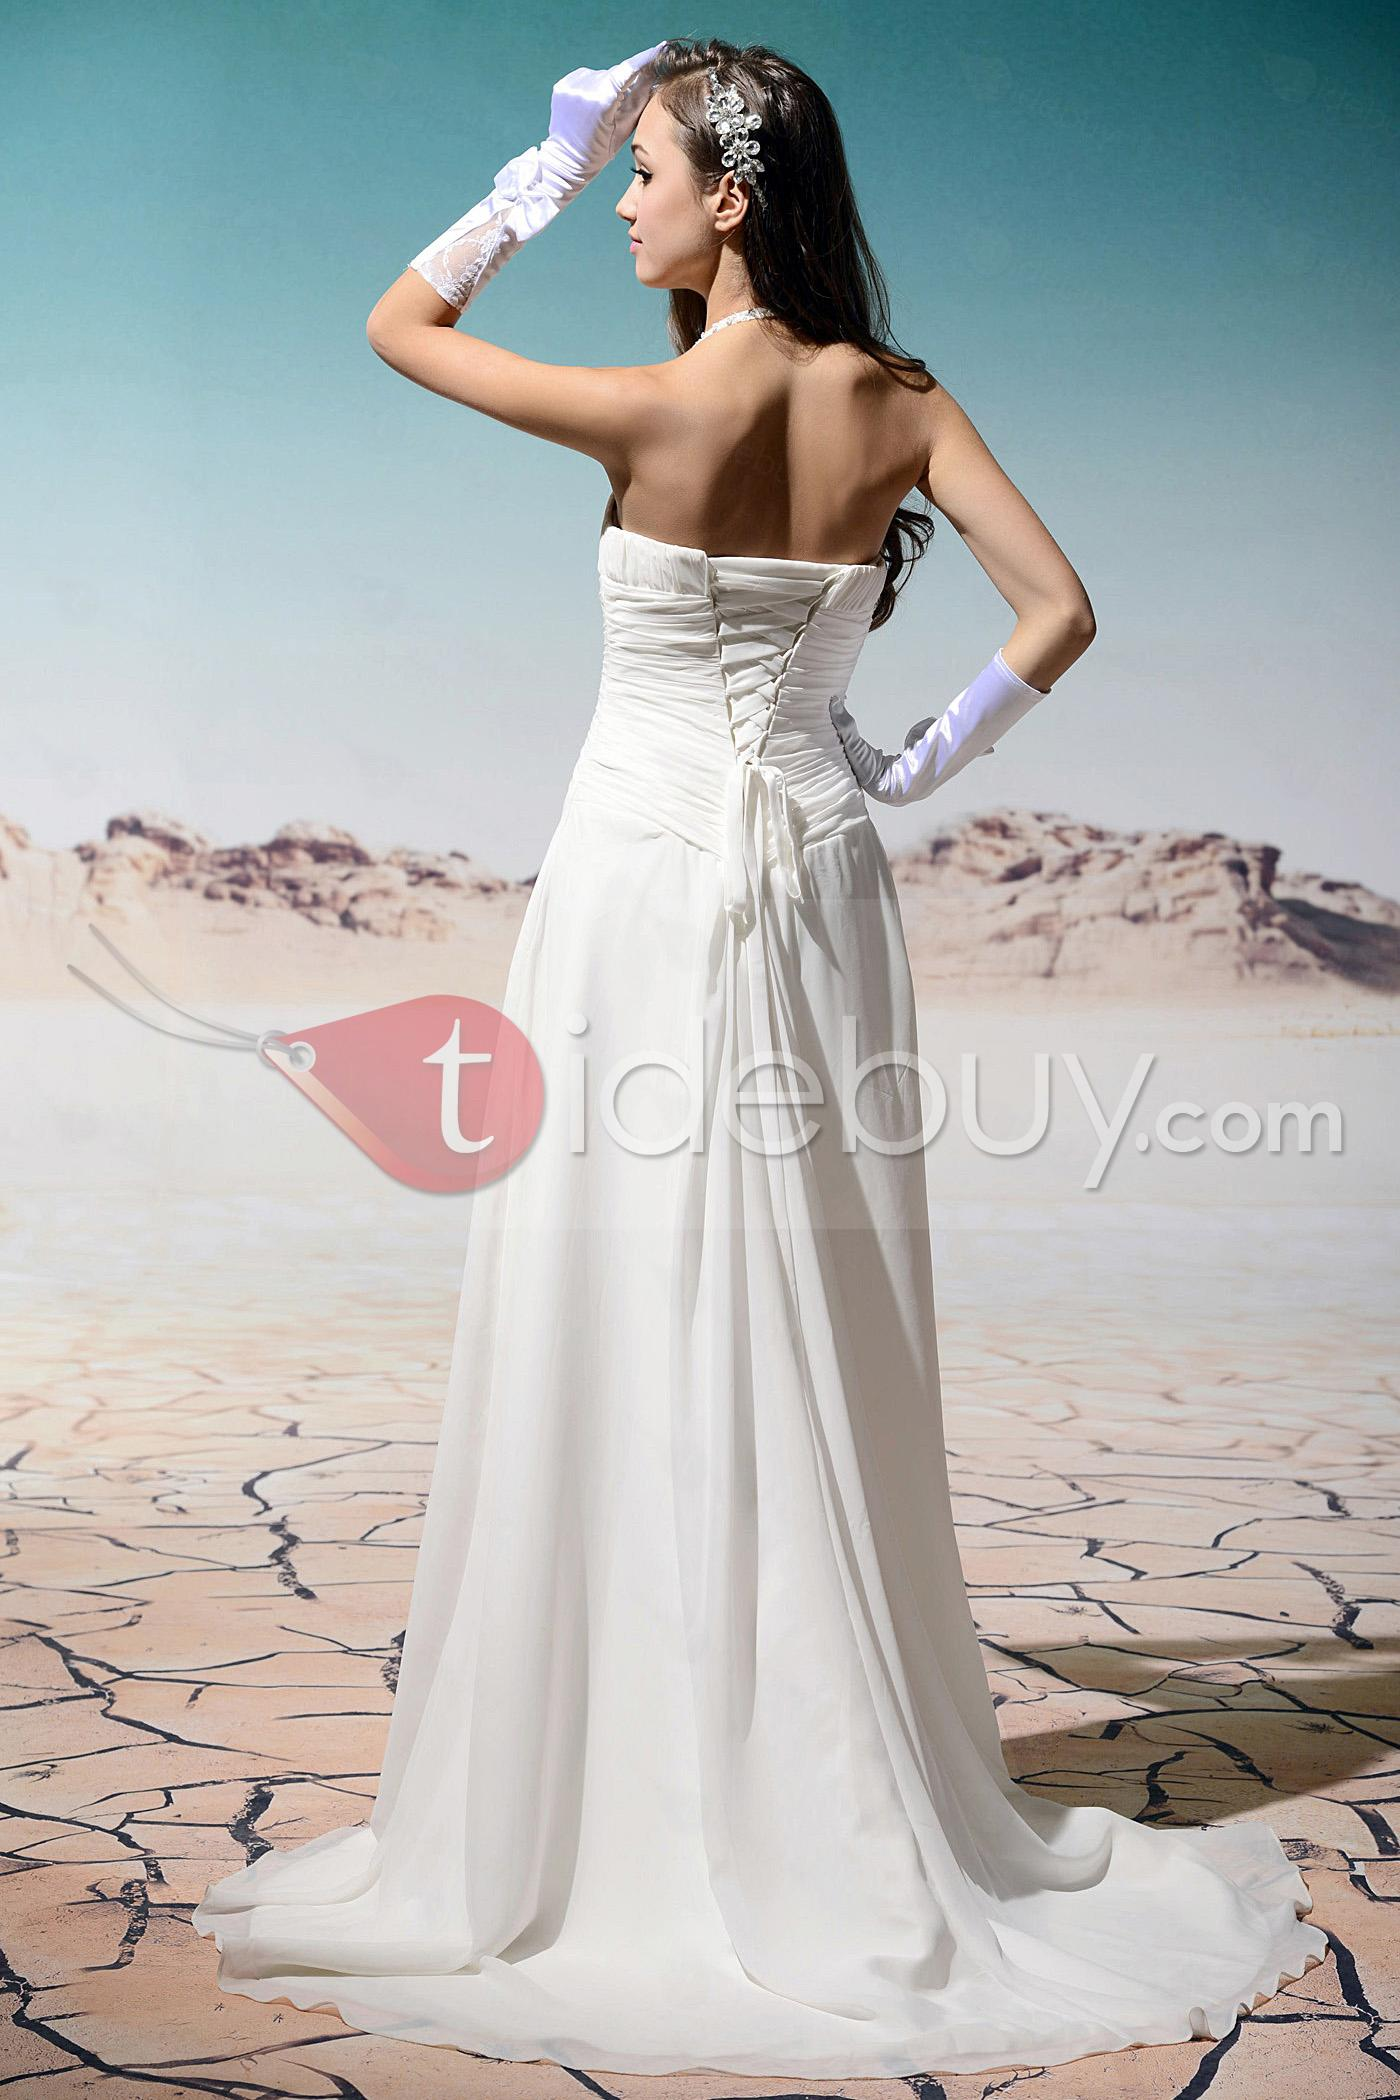 Finest China Wedding Dresses Company Tidebuycom Released Its Casual With